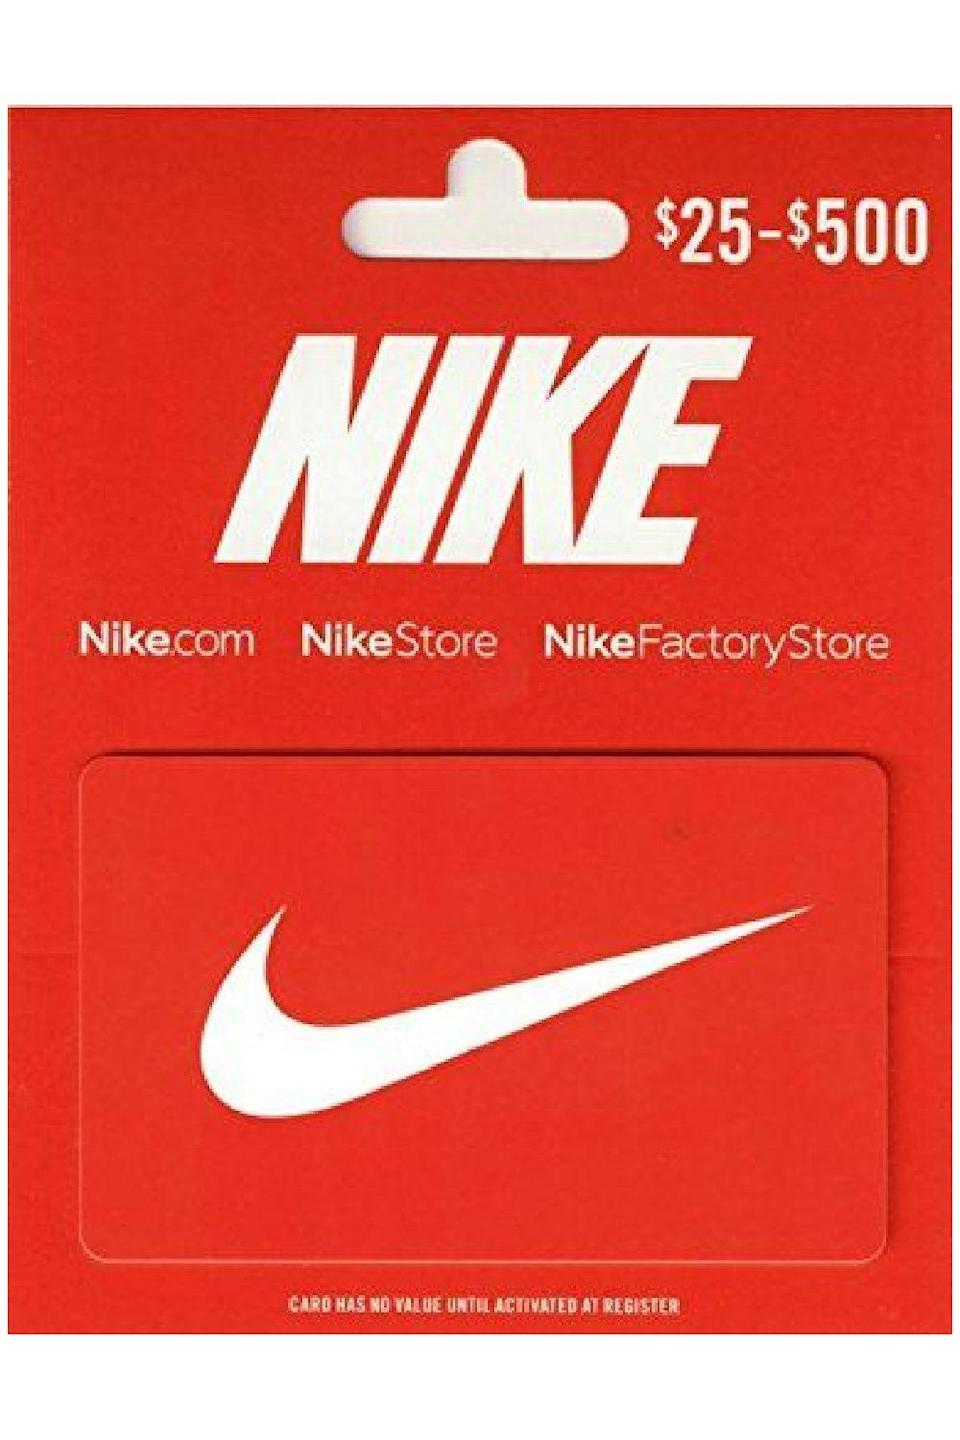 """<p><strong>Nike</strong></p><p>amazon.com</p><p><a href=""""https://www.amazon.com/dp/B01MF5AIWK?tag=syn-yahoo-20&ascsubtag=%5Bartid%7C10049.g.34229001%5Bsrc%7Cyahoo-us"""" rel=""""nofollow noopener"""" target=""""_blank"""" data-ylk=""""slk:Shop Now"""" class=""""link rapid-noclick-resp"""">Shop Now</a></p><p>I know I said you shouldn't grab a handful of the same gift card and give them to everyone on your list, but with a Nike gift card, you can actually do just that. Everyone from a new mom (have you seen baby Nikes? So. Cute.) to a <a href=""""https://www.cosmopolitan.com/style-beauty/fashion/g8292641/gifts-for-teen-boys/"""" rel=""""nofollow noopener"""" target=""""_blank"""" data-ylk=""""slk:teenage boy"""" class=""""link rapid-noclick-resp"""">teenage boy</a> could use one of these.</p>"""